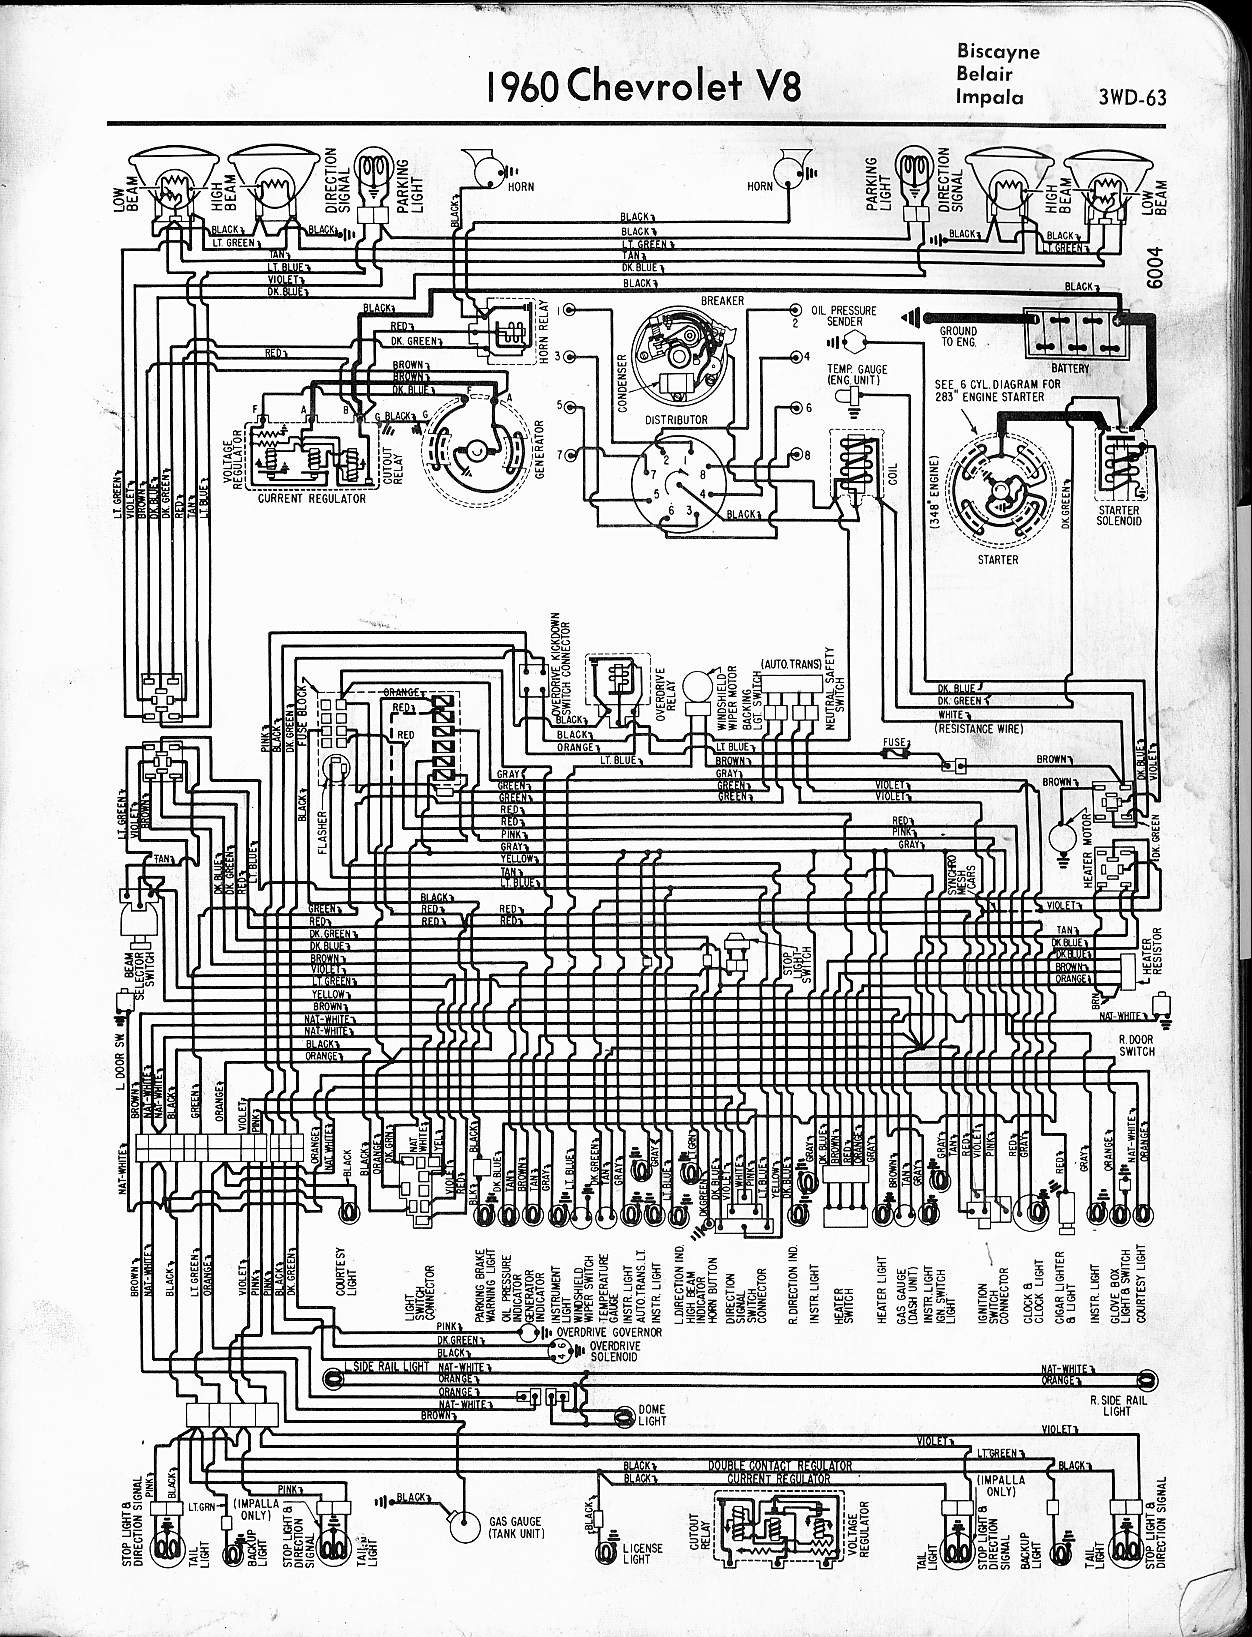 2006 Dodge Charger Engine Diagram 2006 Chevy Impala 3 9 Engine 1961 Chevy Truck Wiring Diagram Truck Of 2006 Dodge Charger Engine Diagram